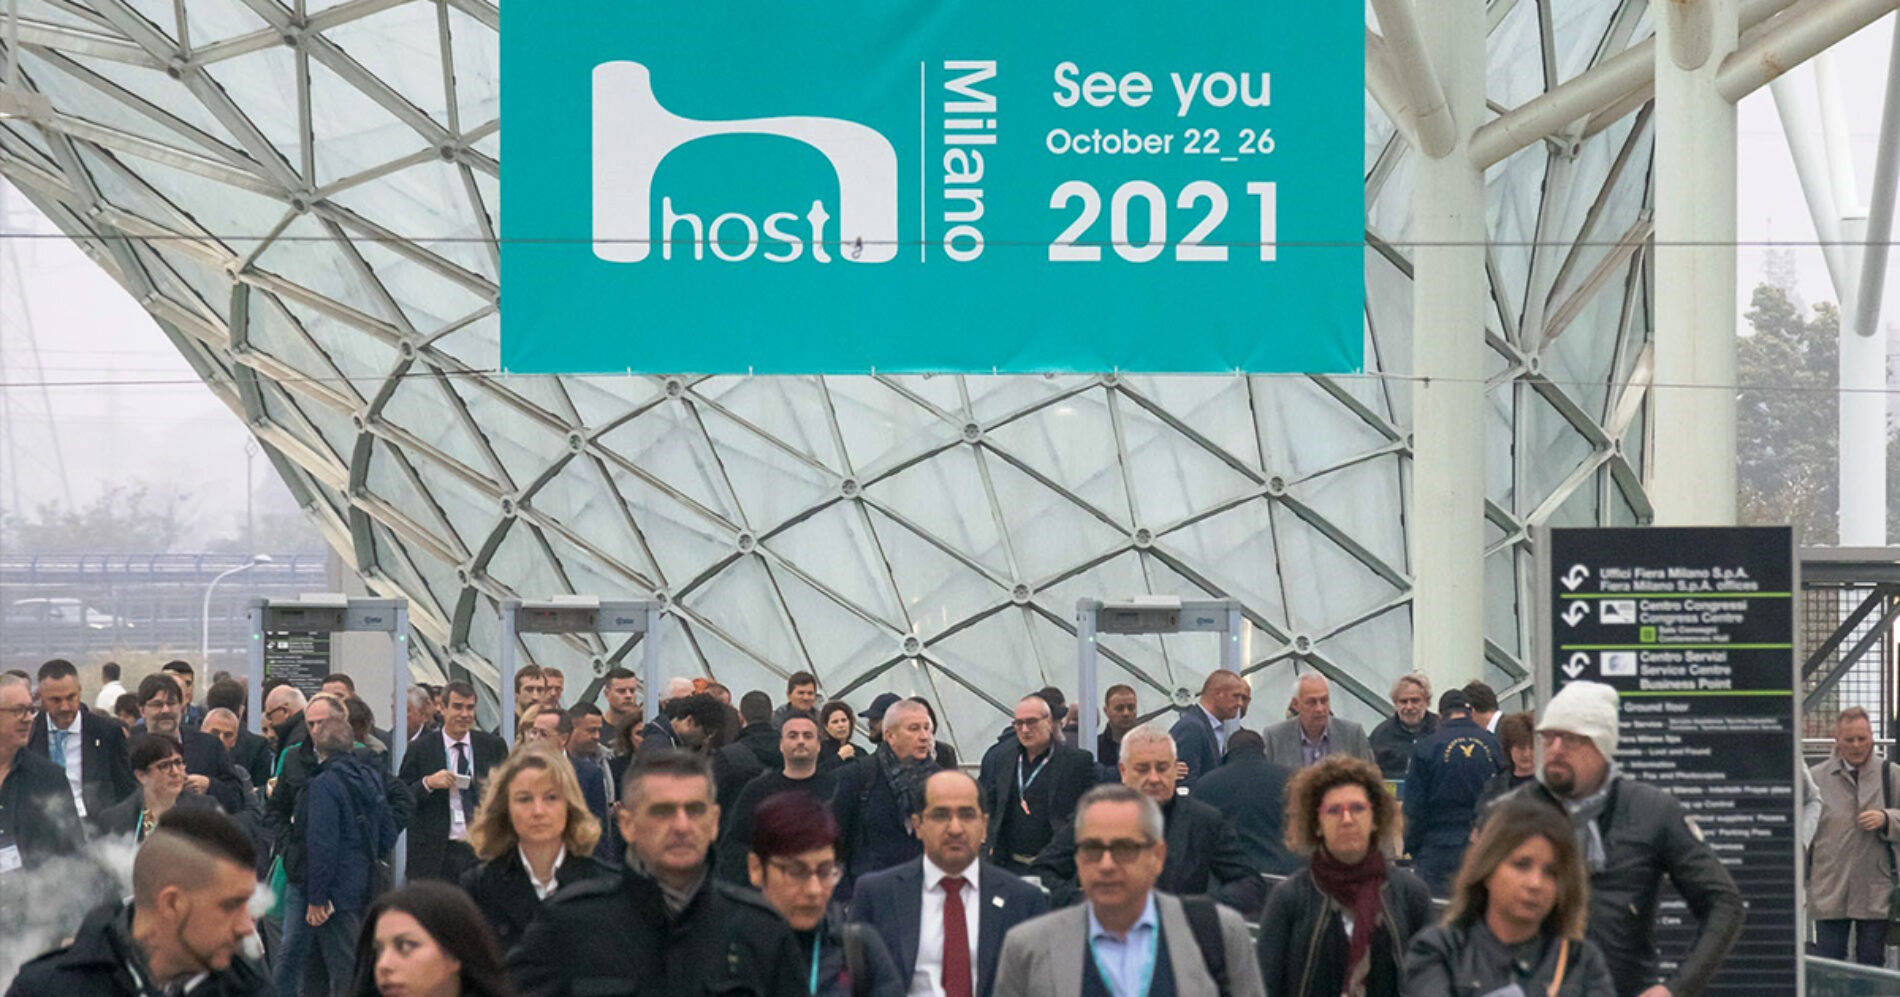 HostMilano 2019 sees record-breaking edition with 200,000 visitors